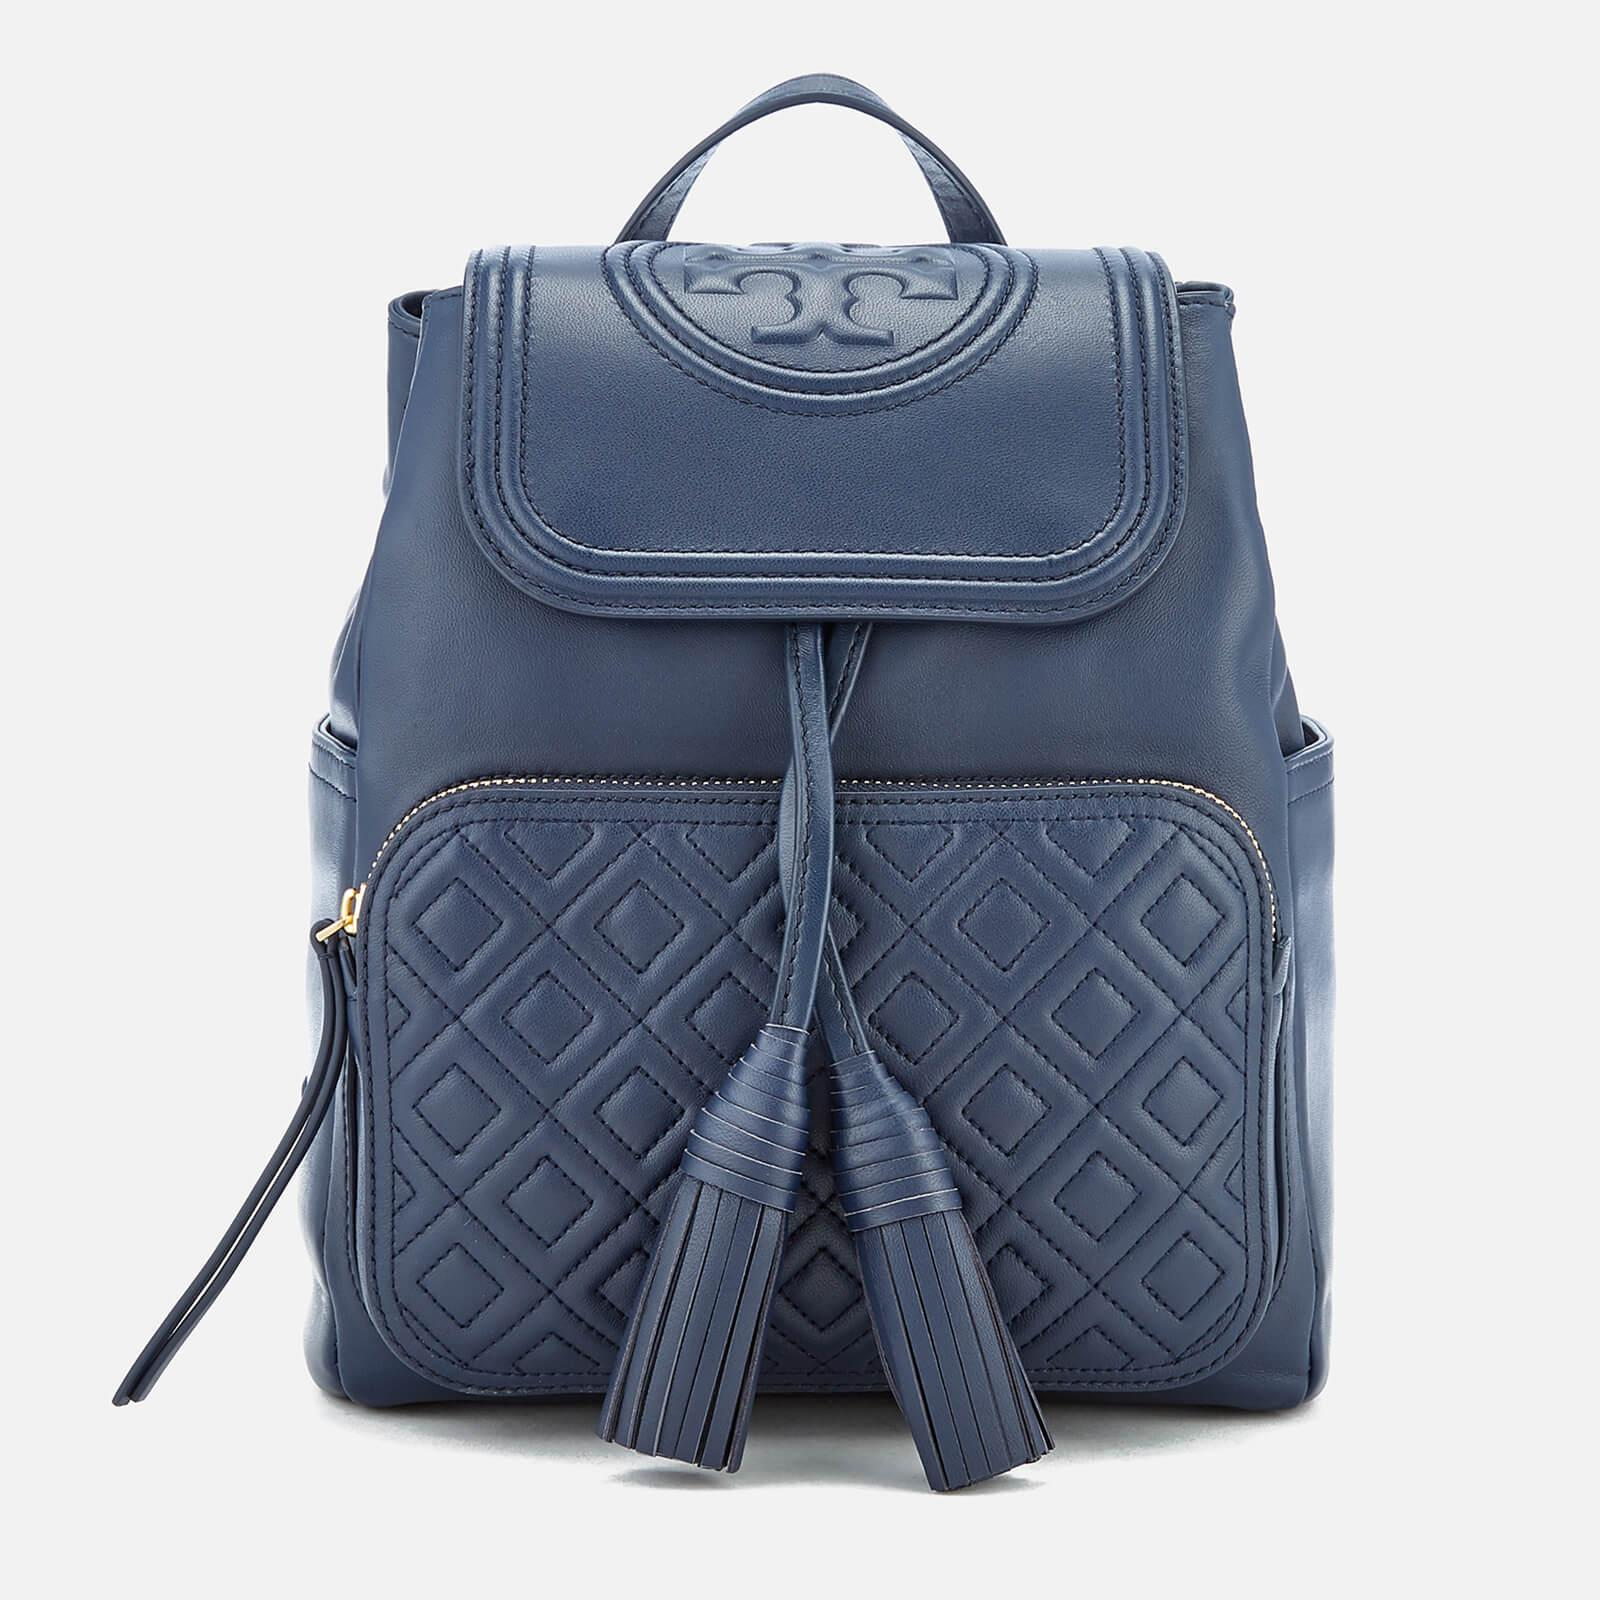 ab2e2507f78d Tory Burch Fleming Backpack in Blue - Lyst